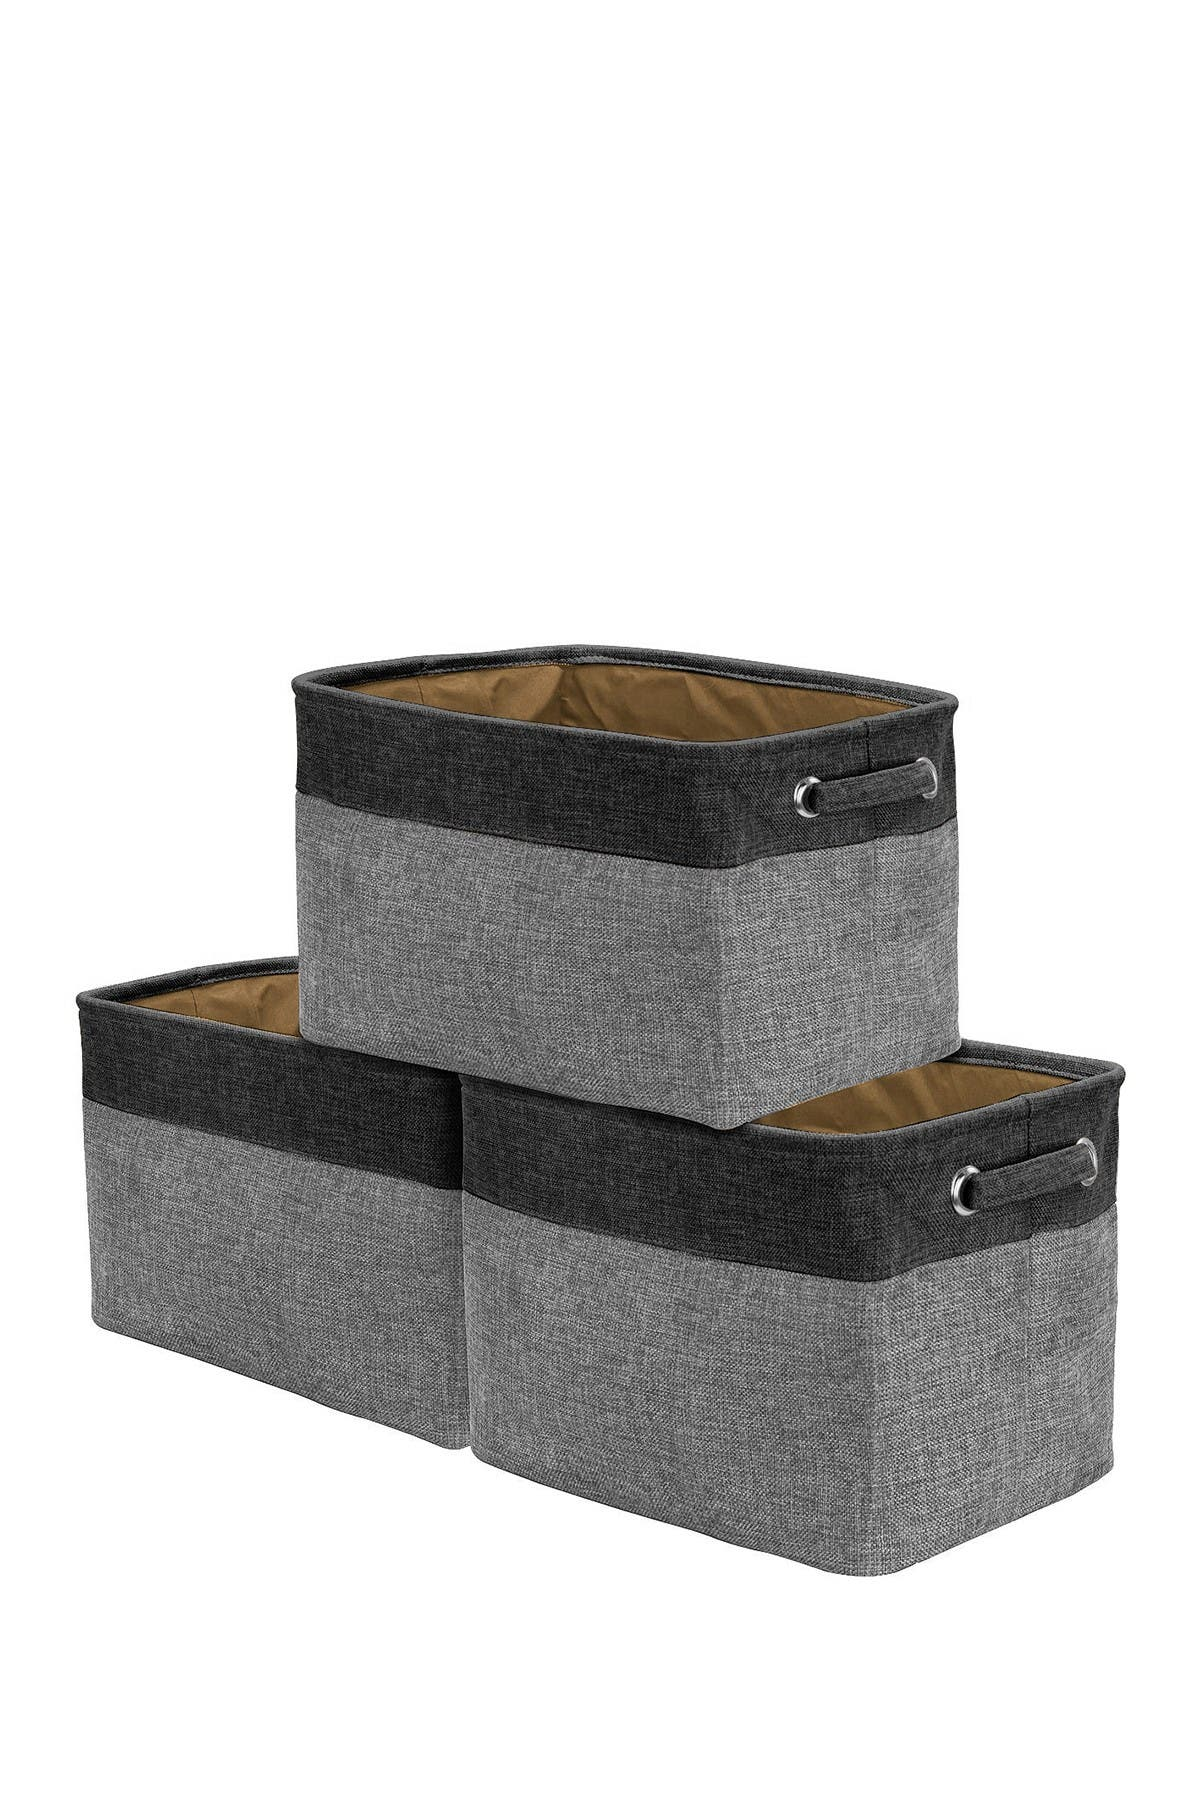 Image of Sorbus Black Twill Storage Basket - Set of 3